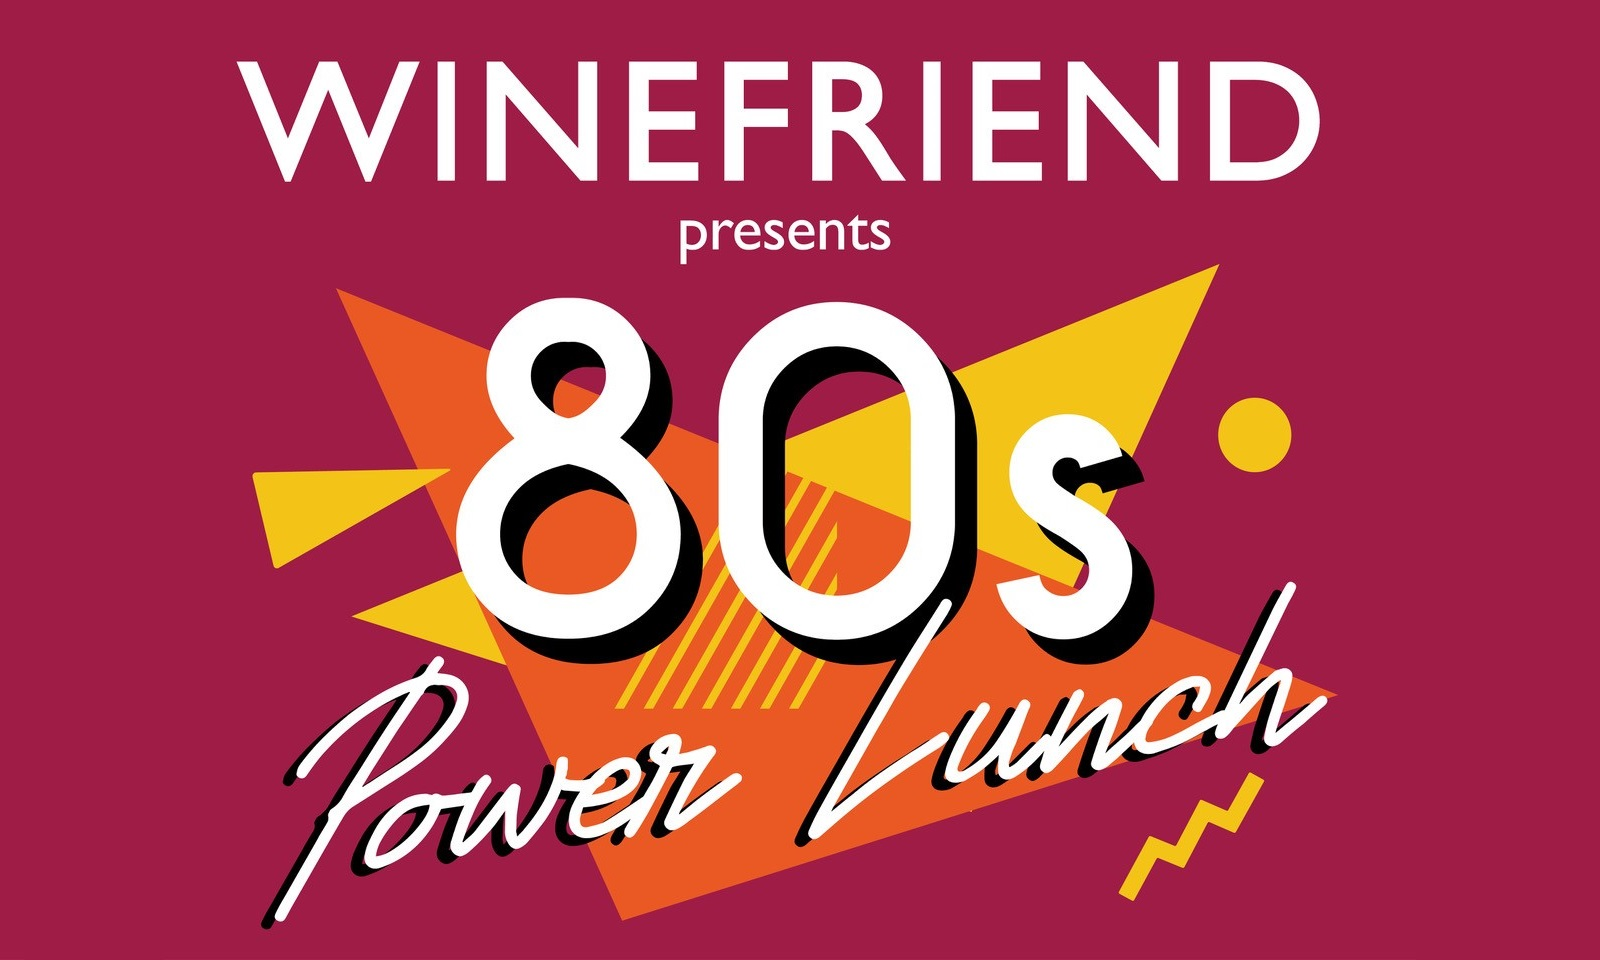 Wellington On A Plate 80's Power Lunching & Wine Tasting :: August 2